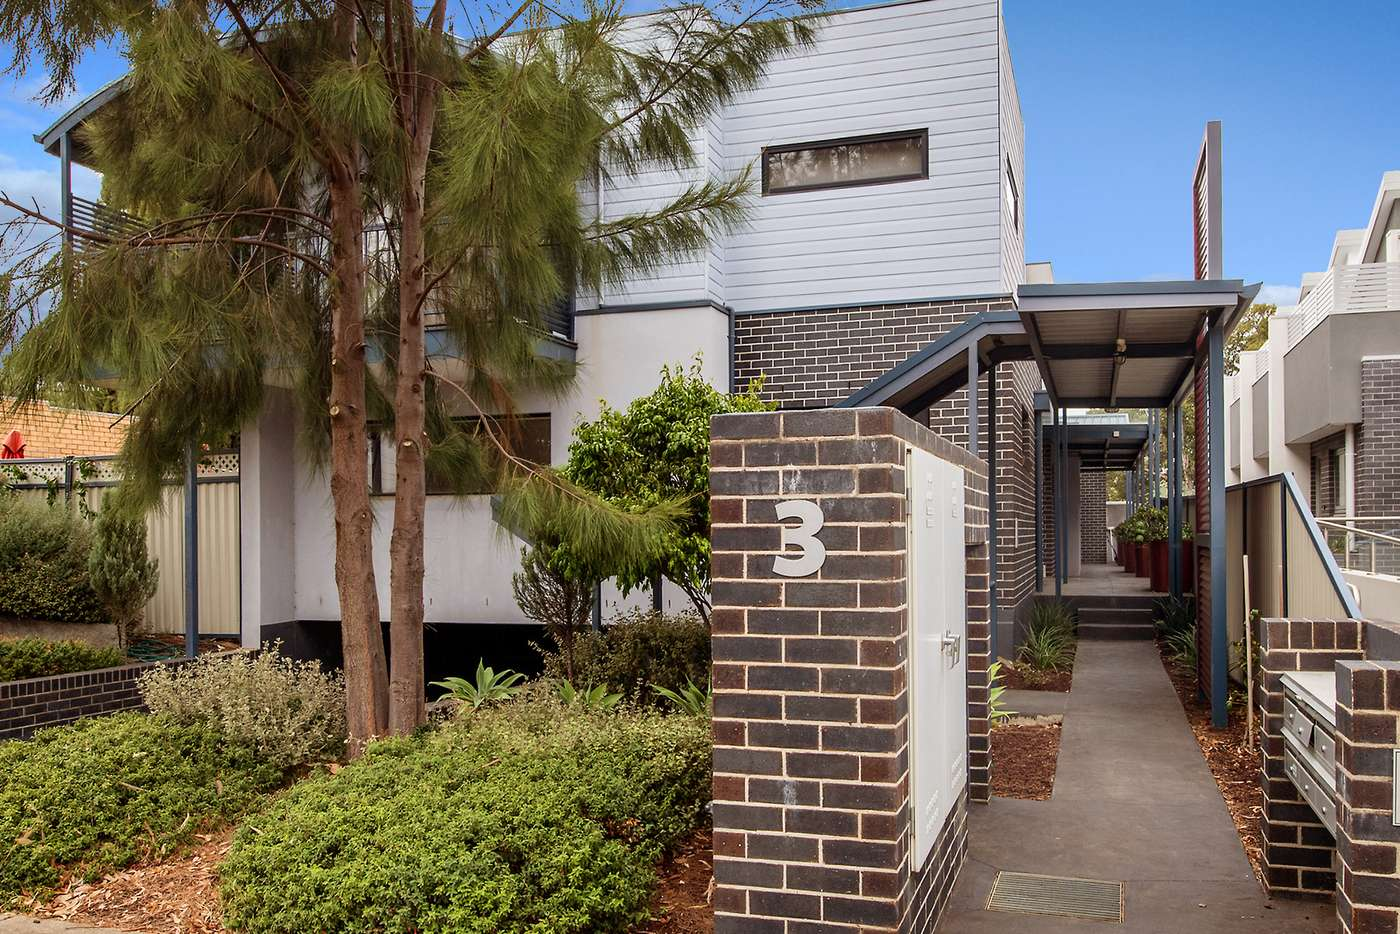 Main view of Homely unit listing, 2/3 Orr Street, Heidelberg Heights VIC 3081